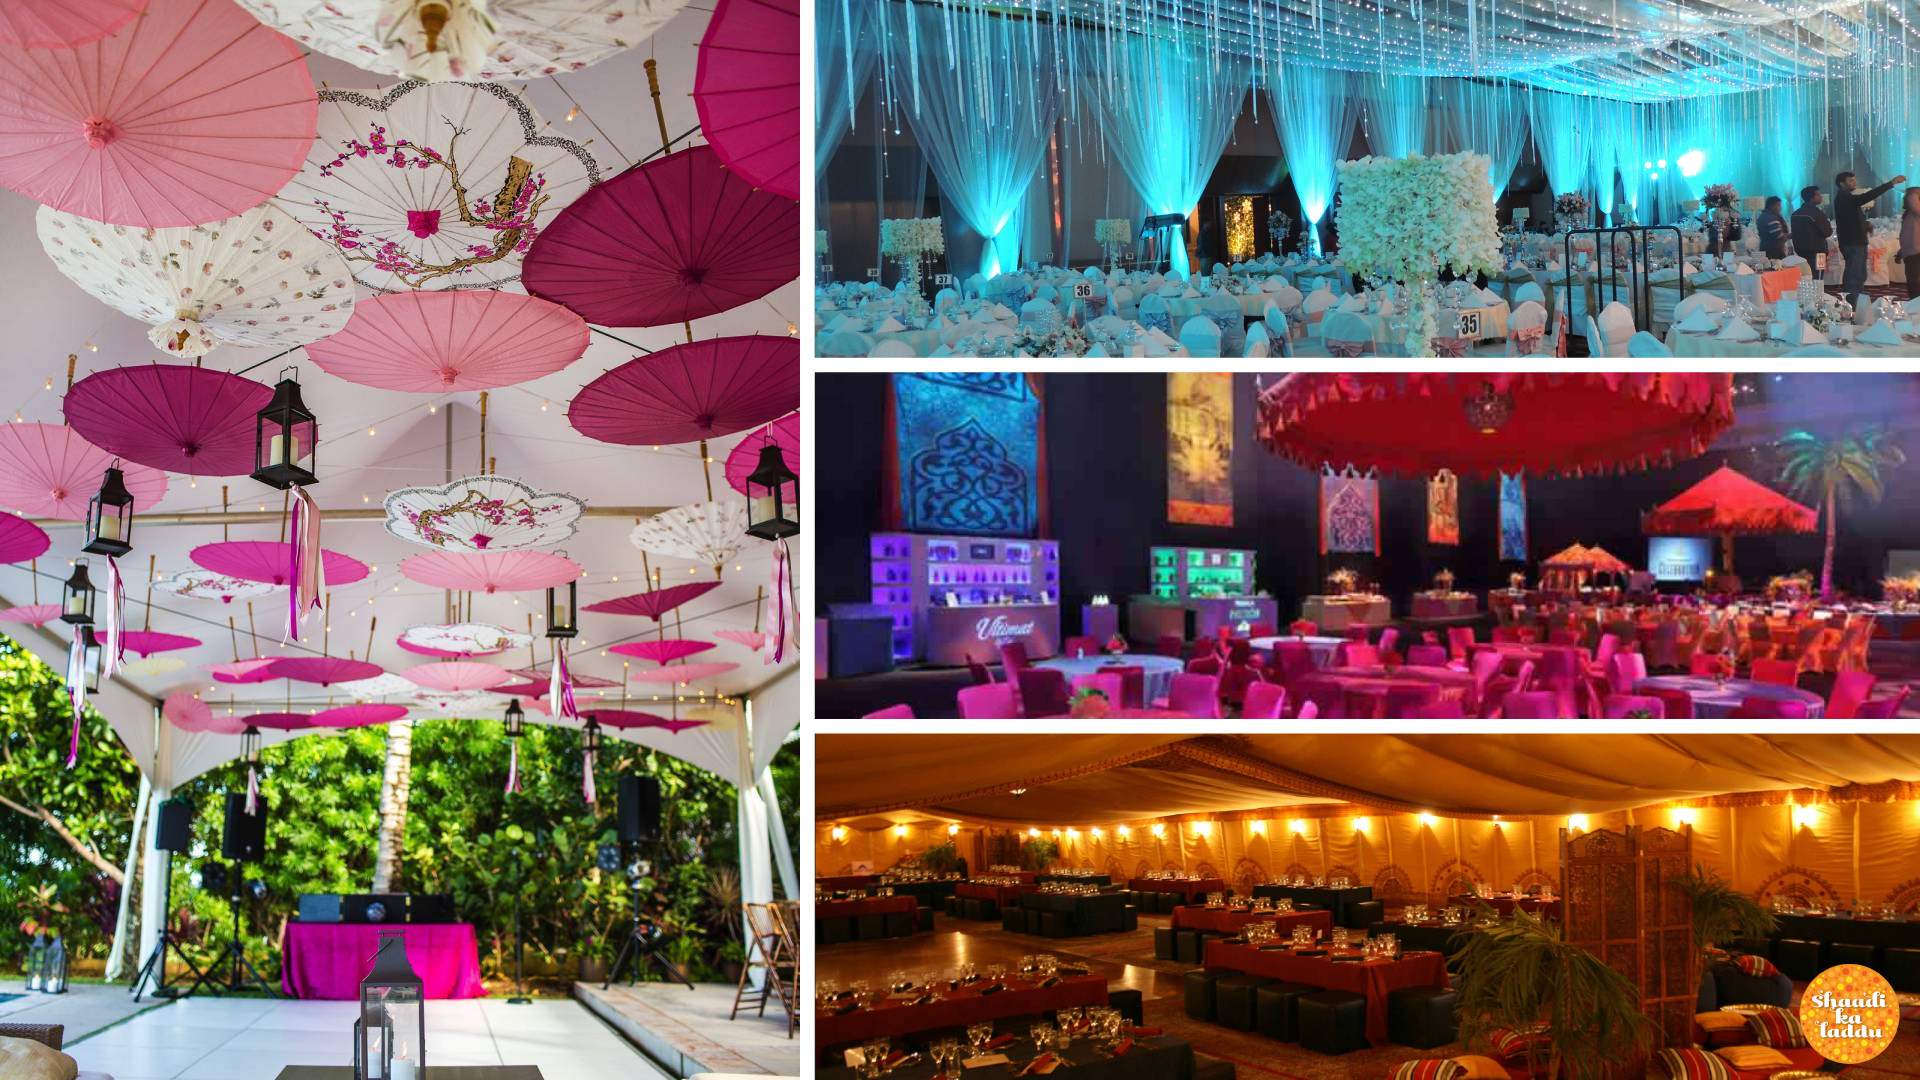 Wedding decor ideas for monsoon theme wedding using umbrellas and light effects